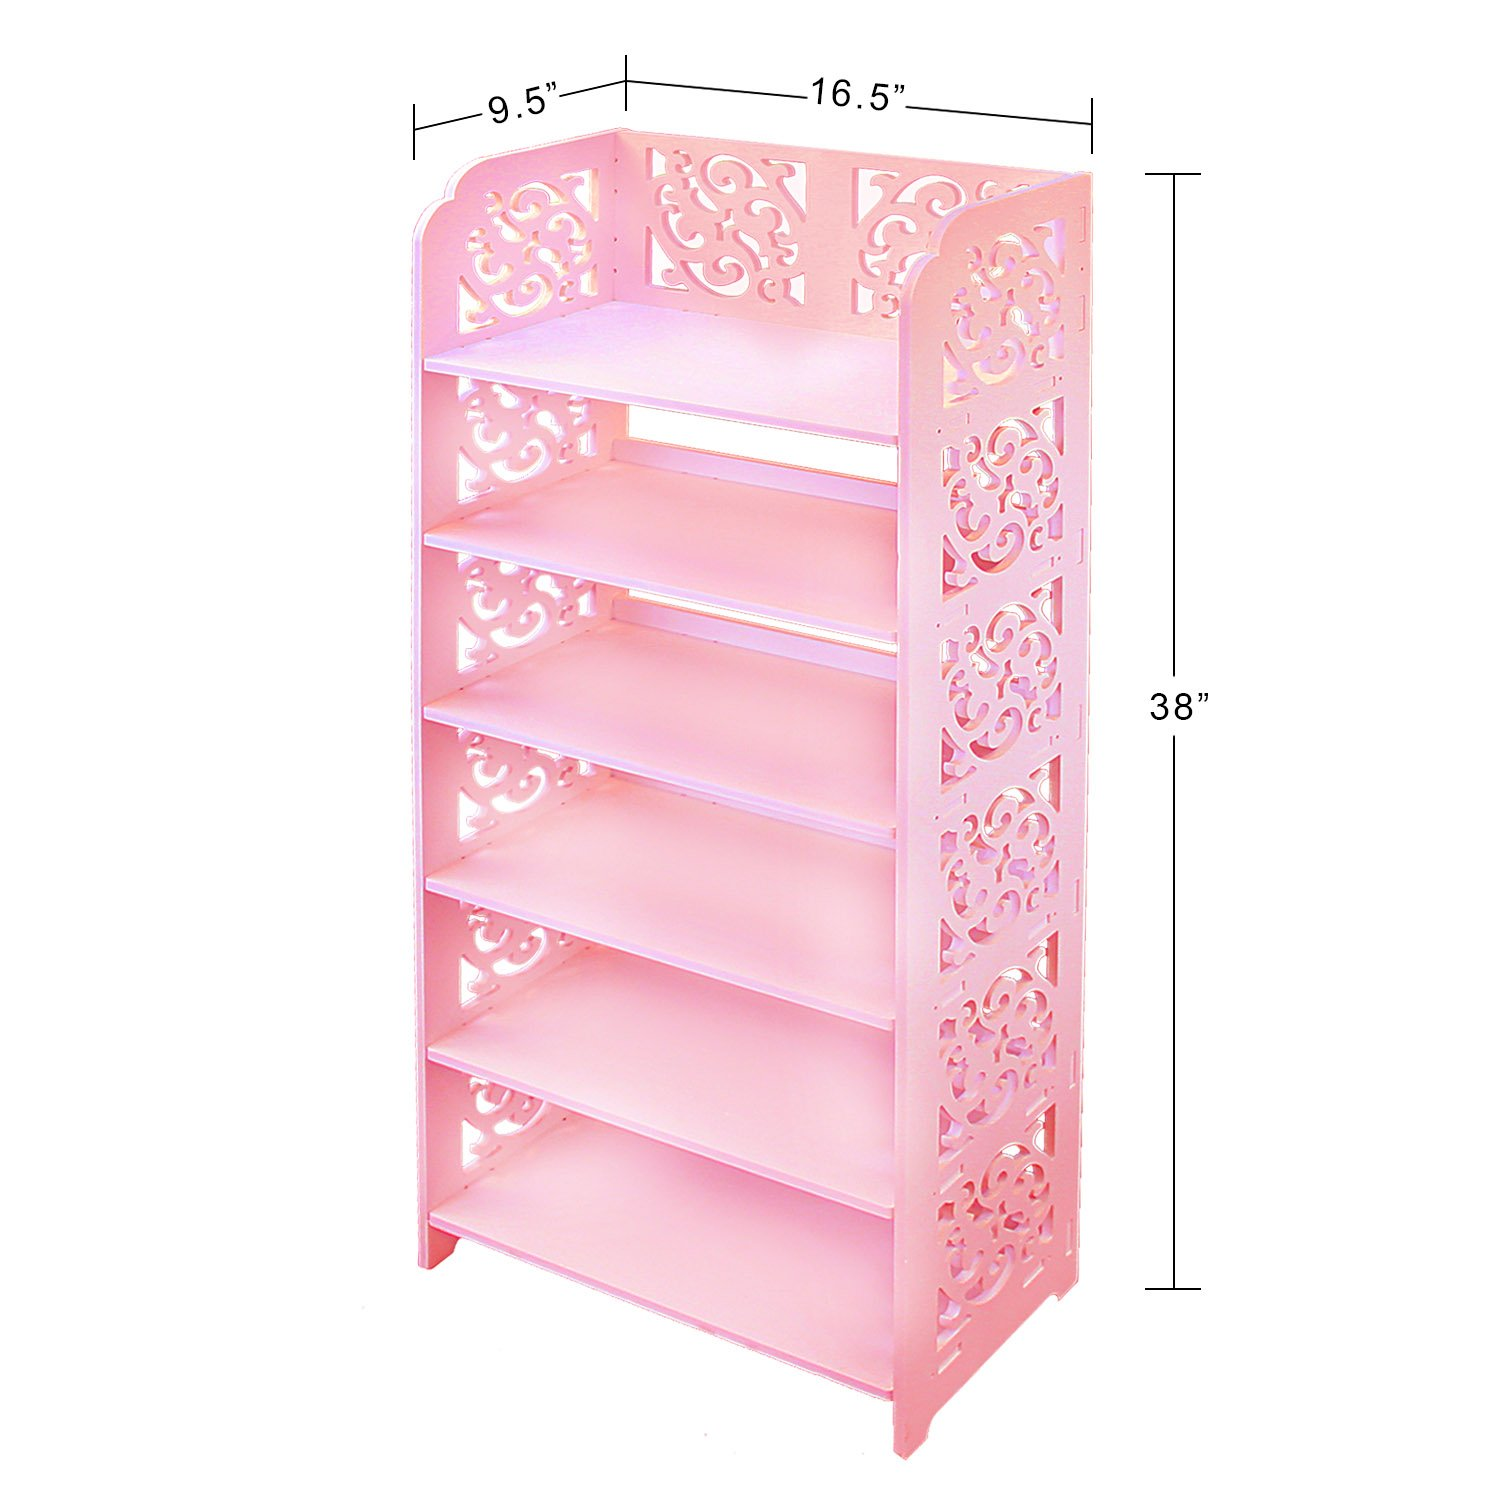 DL furniture WPC Tall 6 Tier Multipurpose Shoe Rack & Book Shelf L16.5 x W9.5 x H38 Environmental Friendly Material | Pink by DL furniture (Image #3)